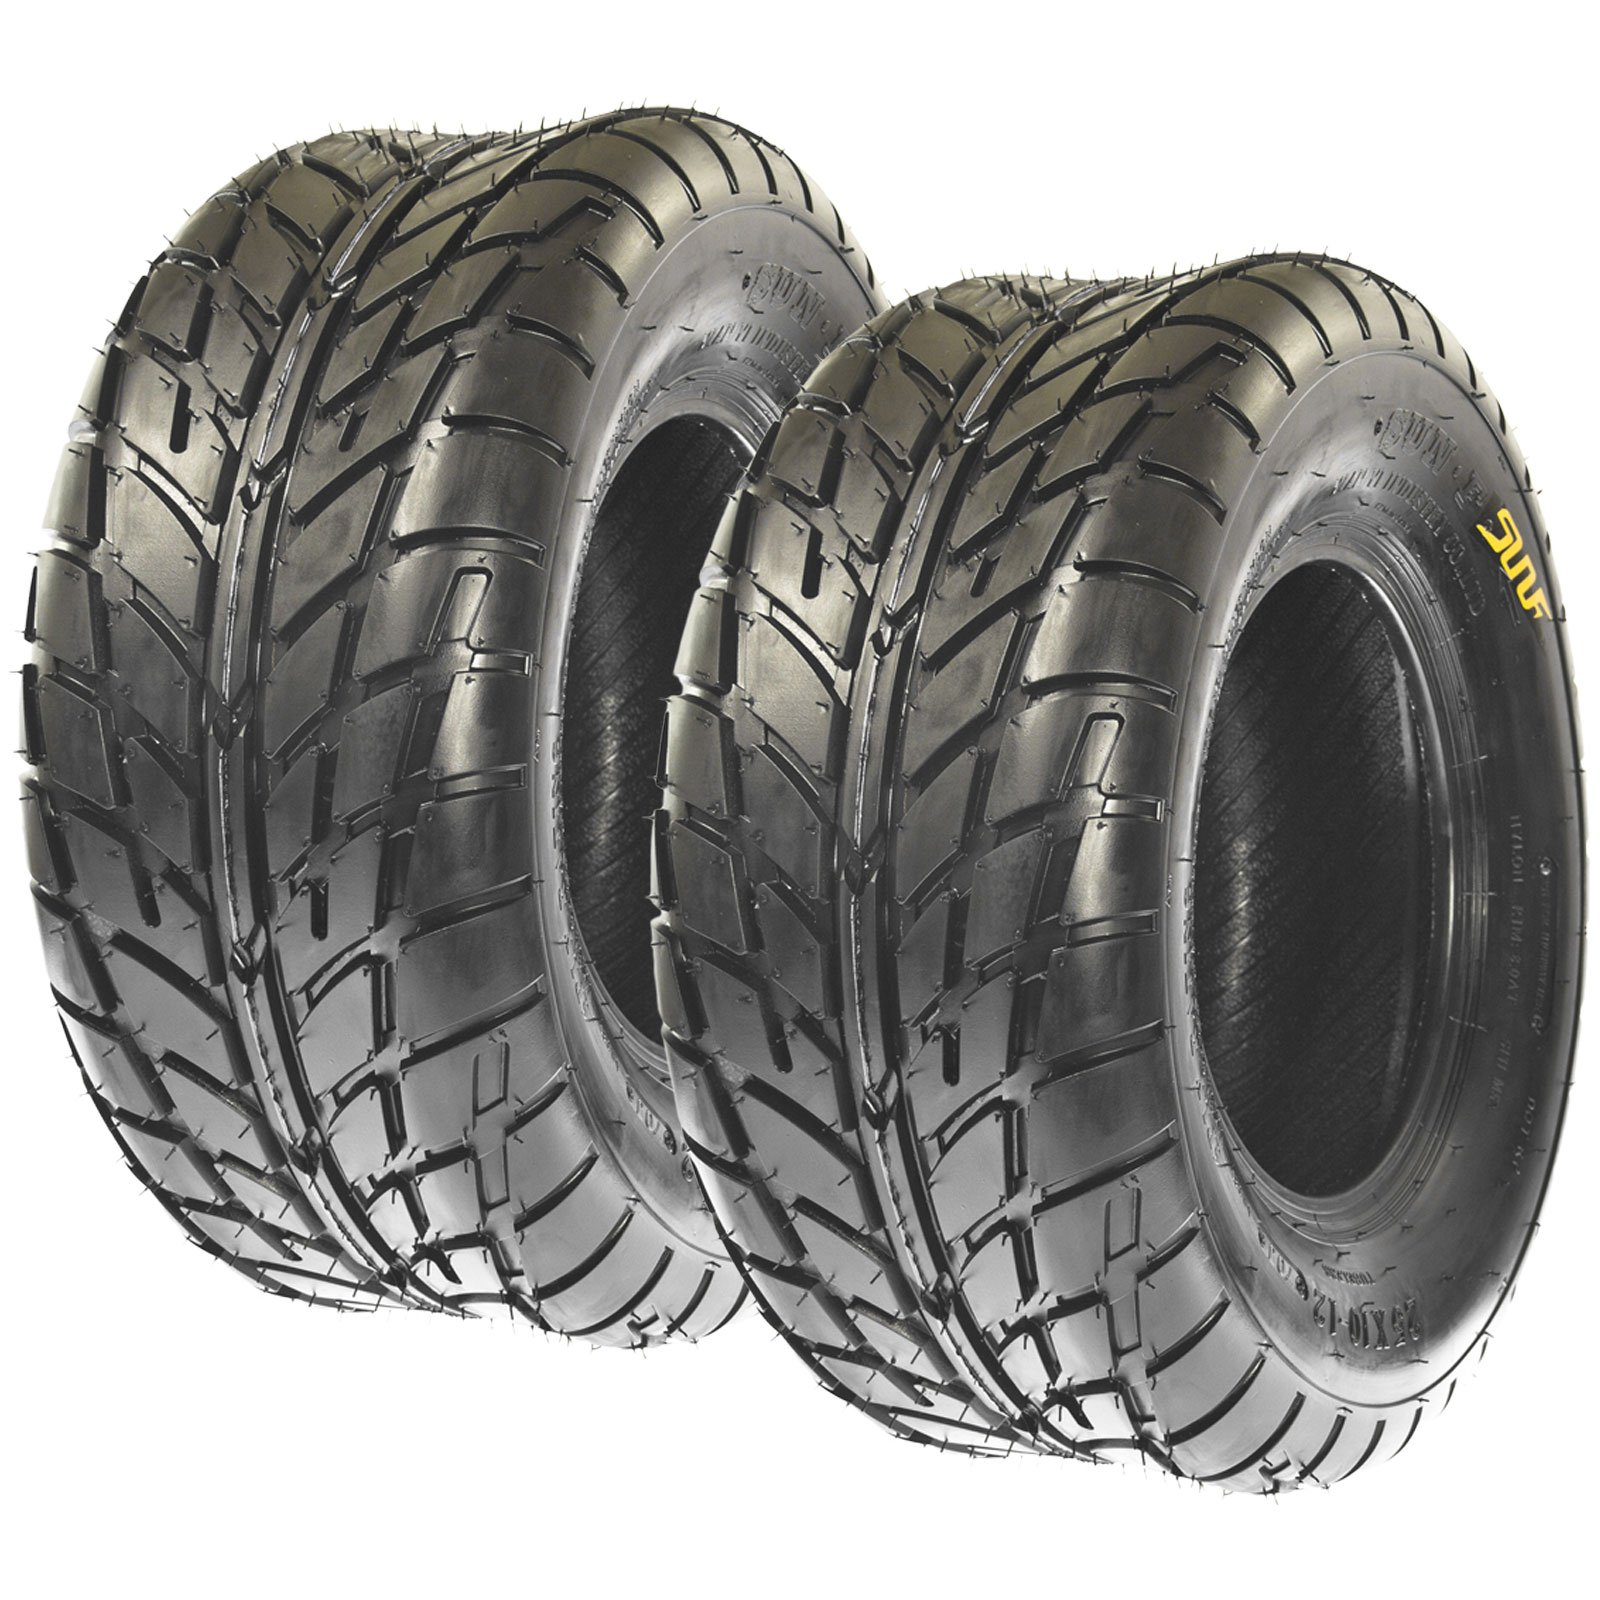 SunF A021 Sport-Performance ATV/UTV Tires 20x10-9 , 6-PR (Pair of 2) |Symmetrical/Directional Tread